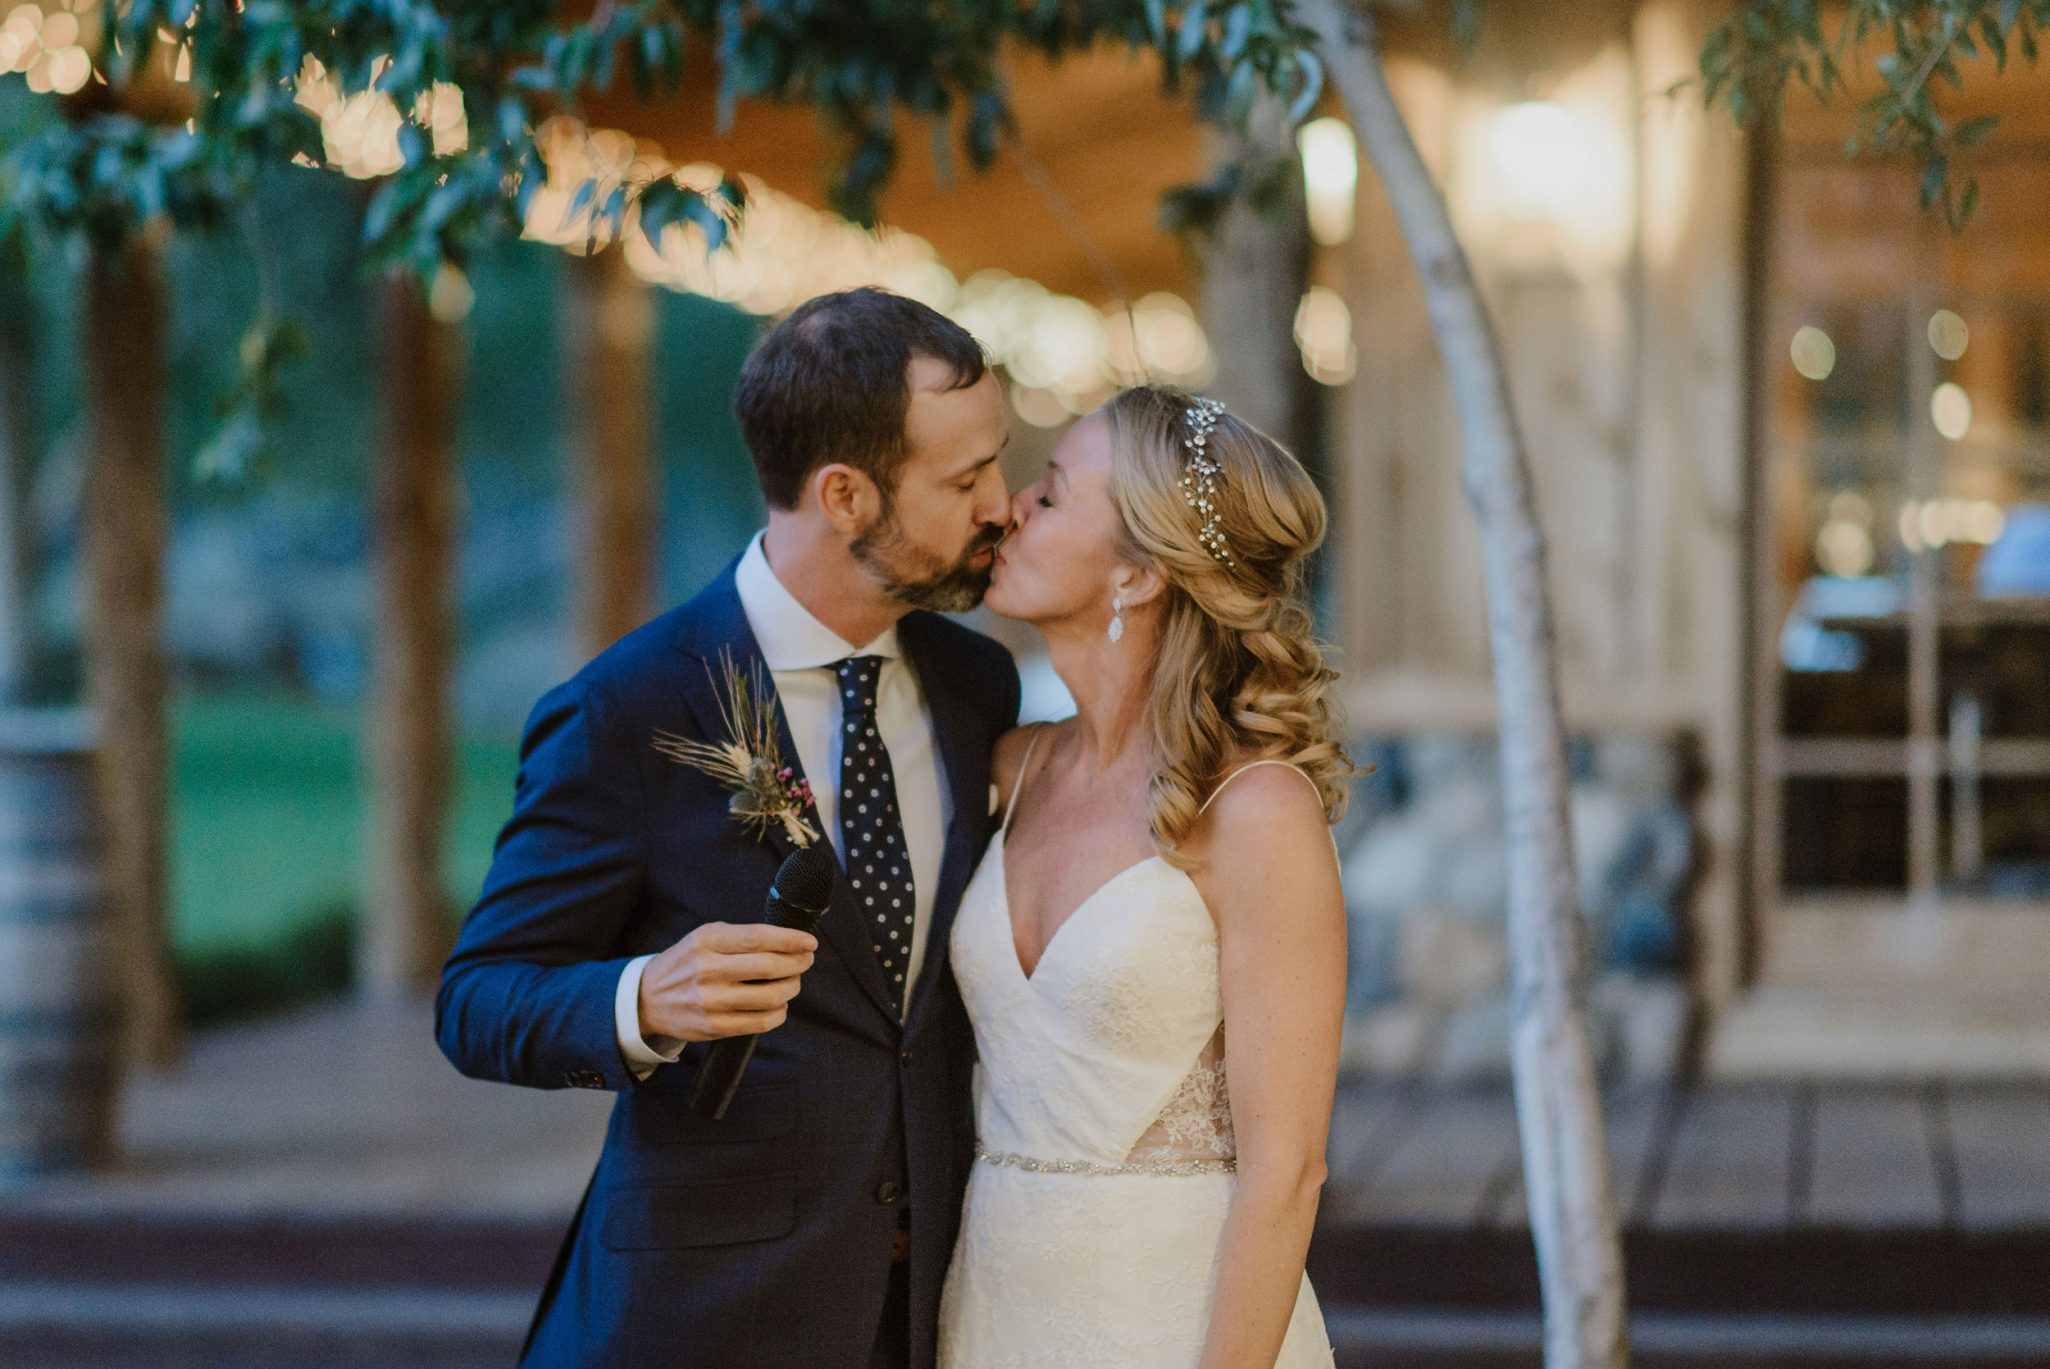 A Dreamy Spring Wedding at Ridgewood Event Center / Durango Weddings Magazine